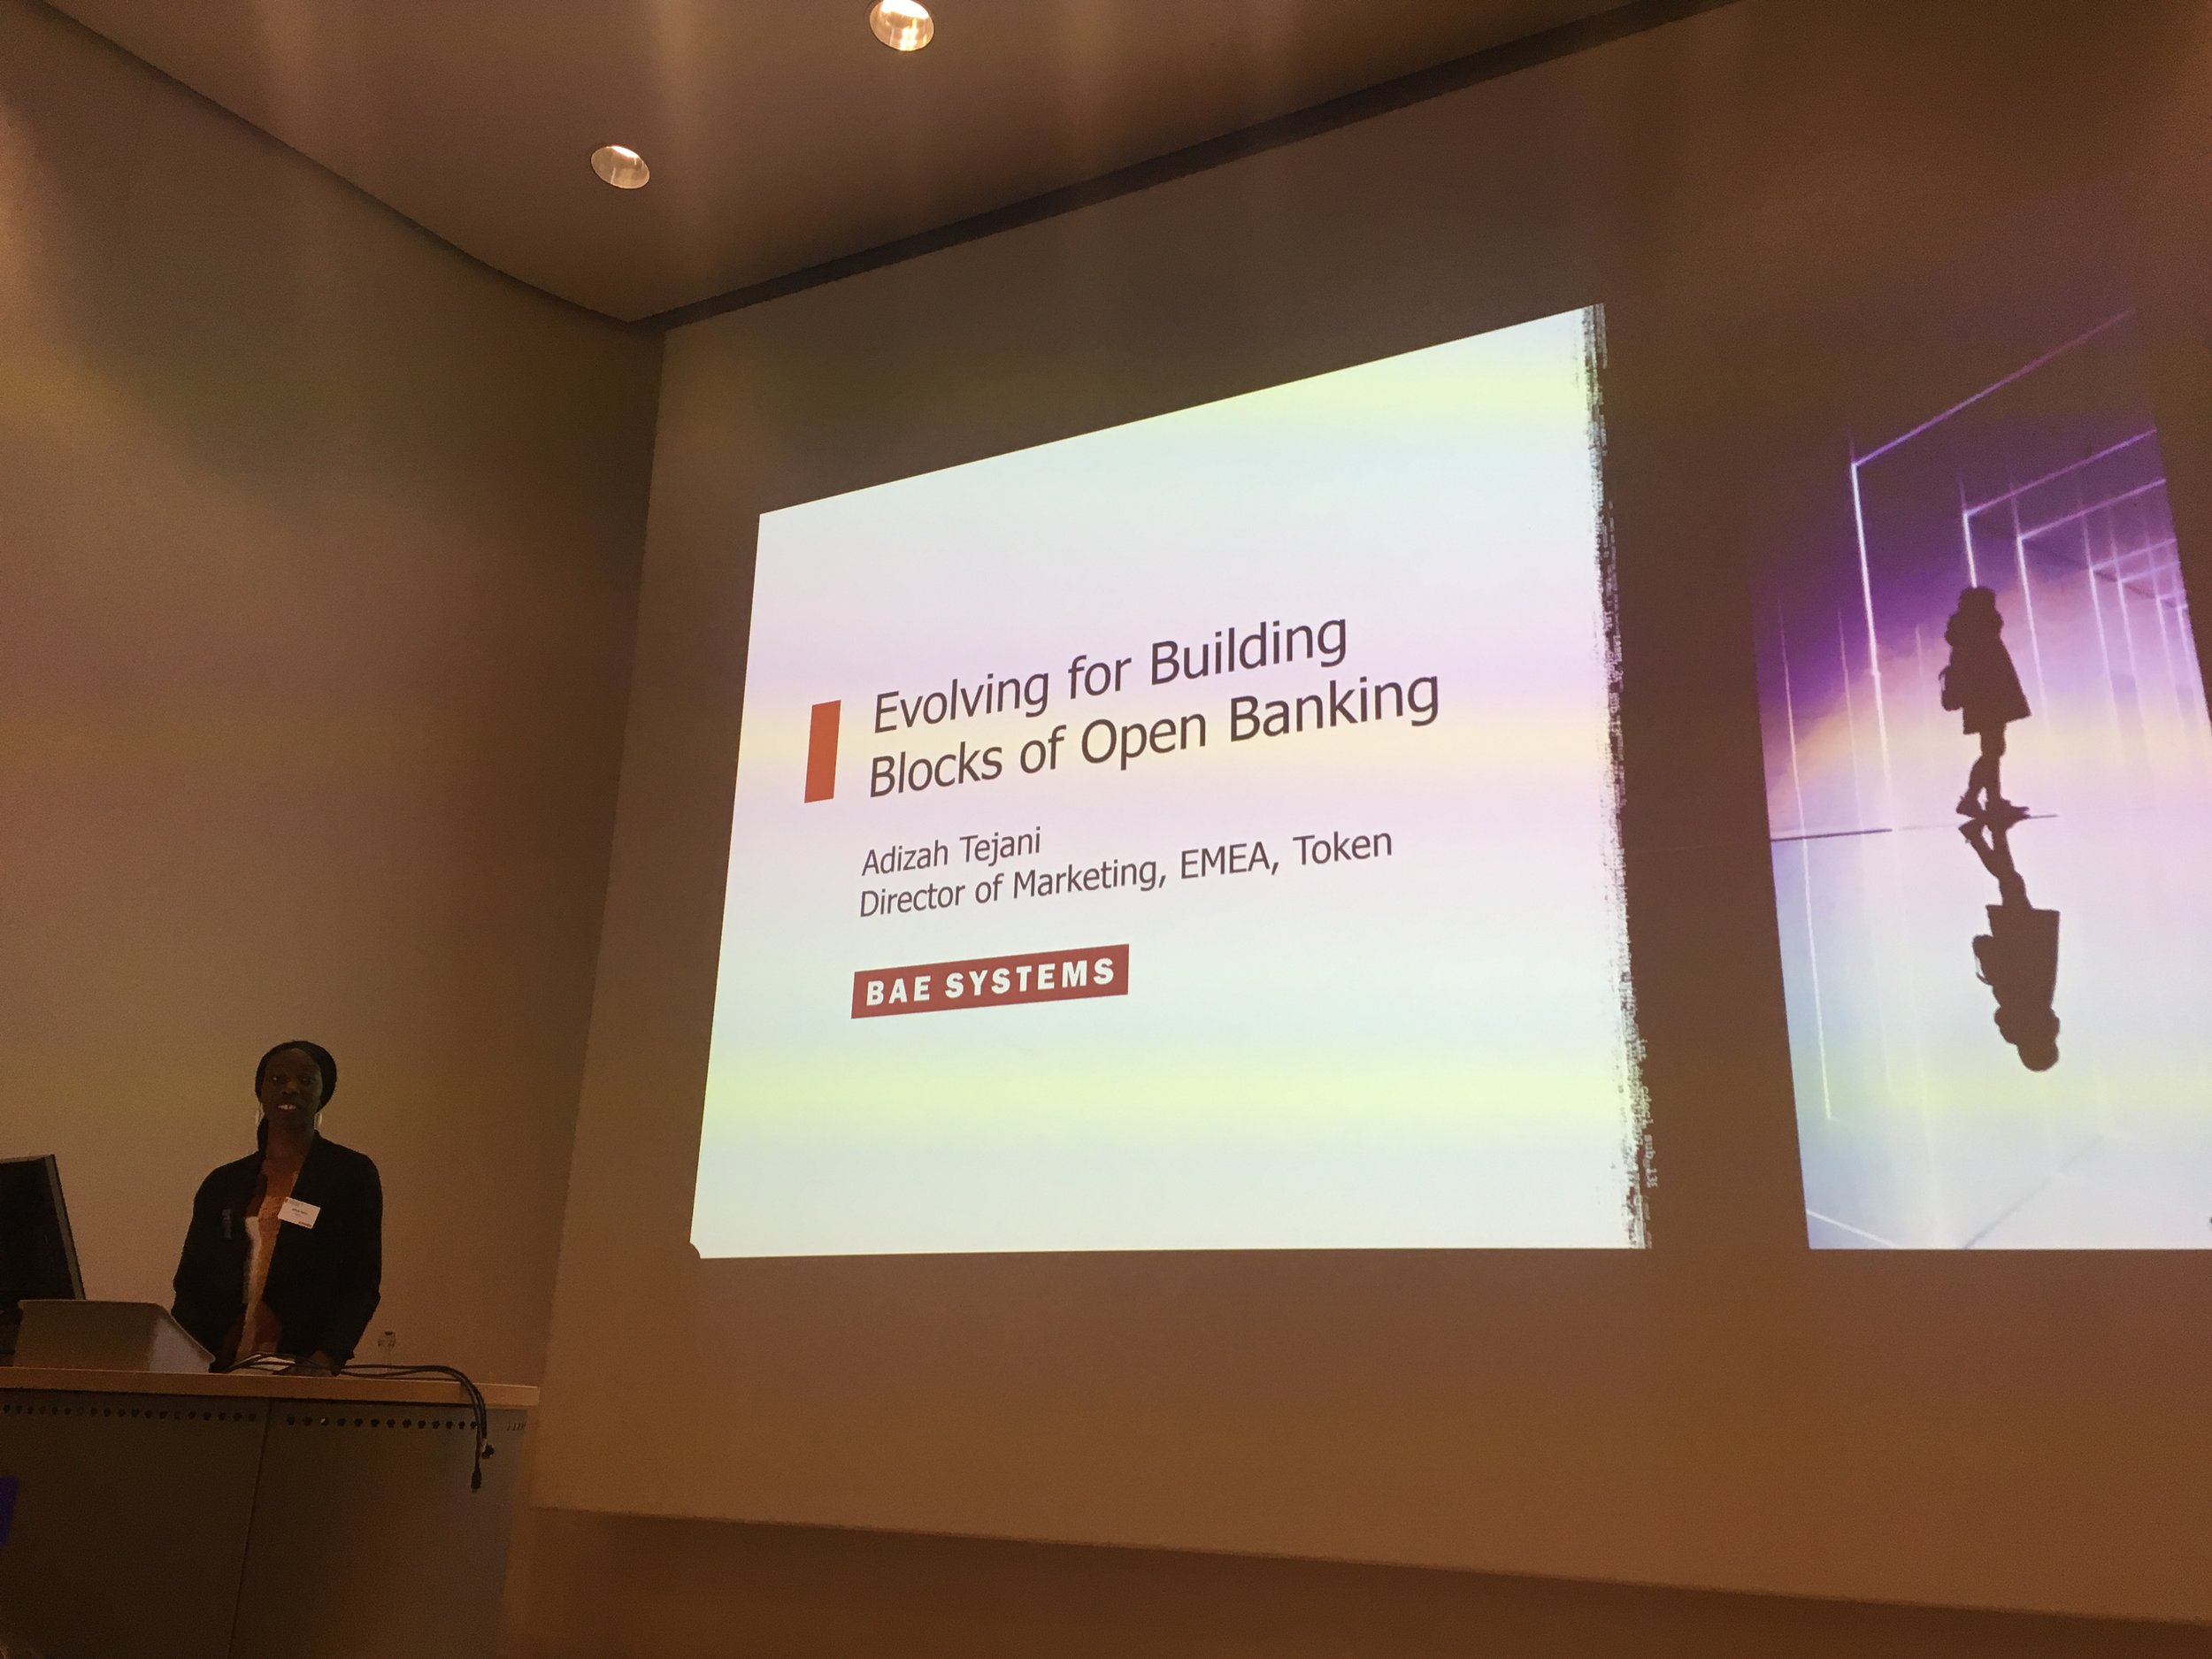 Adizah Tejani on her talk about Open Banking Technology.